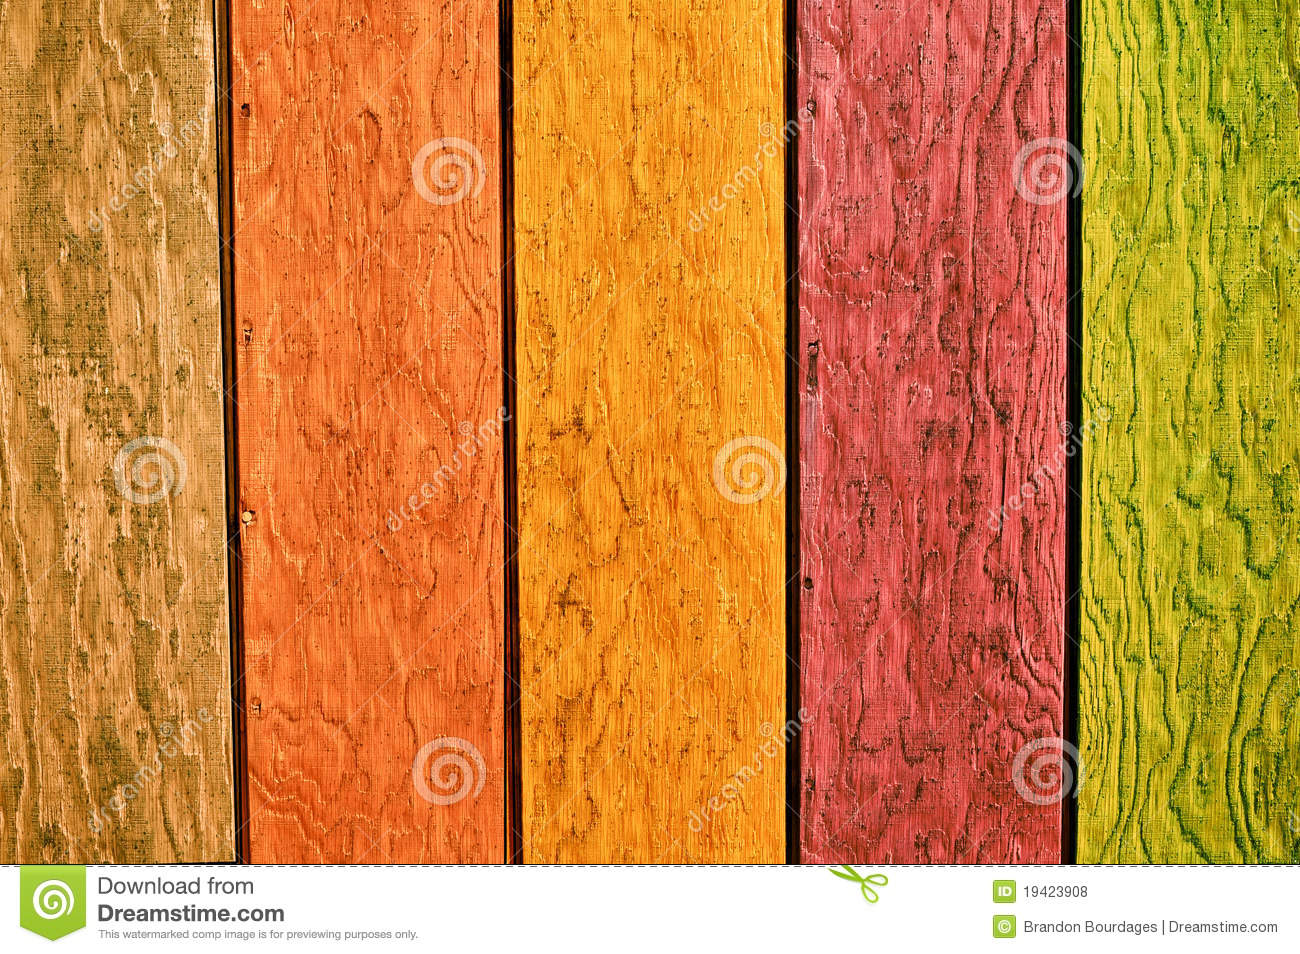 Fondo multi de madera del color fotos de archivo libres de for Colores de madera